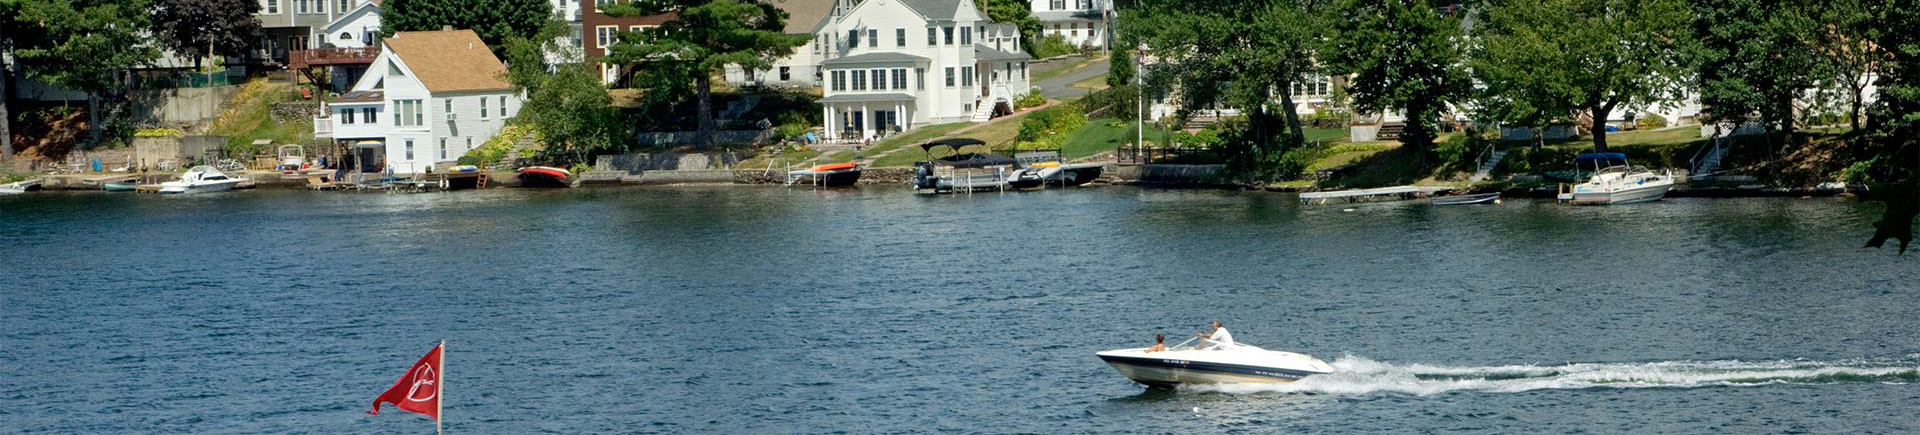 Wexford Village Apartments in Worcester, MA - Lake Quinsigamond